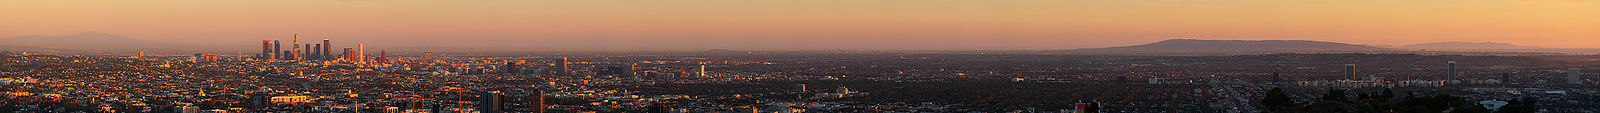 Panorama of Los Angeles as viewed from Mulholland Drive. Left to right: Santa Ana Mountains, downtown, Hollywood (foreground), Wilshire Boulevard, Port of Los Angeles, Palos Verdes Peninsula, Santa Catalina Island, and LAX